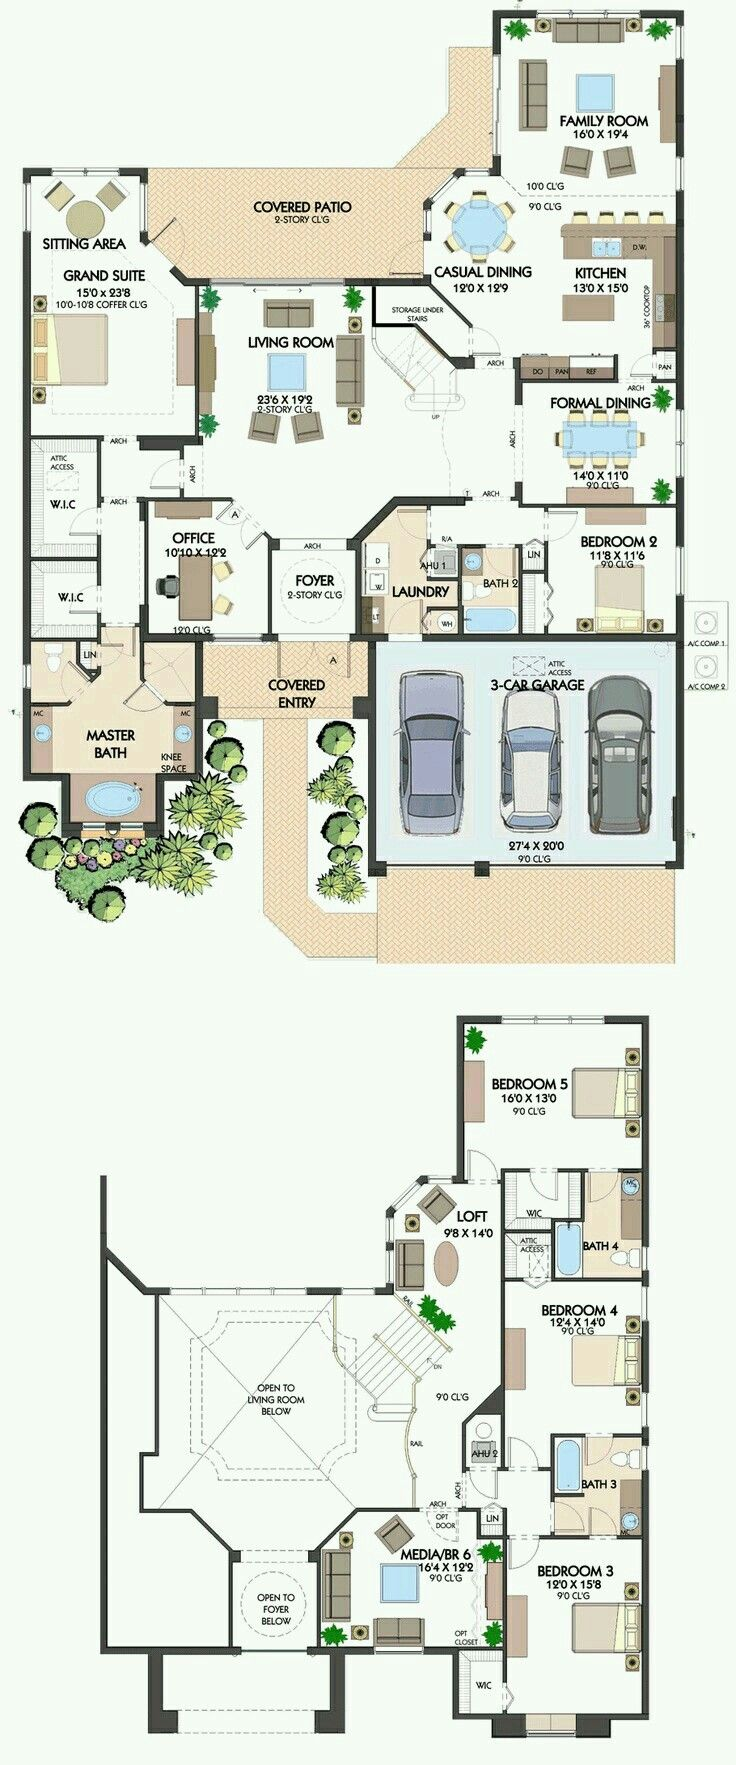 Peachy 17 Best Ideas About Floor Plan Of House On Pinterest Country Largest Home Design Picture Inspirations Pitcheantrous